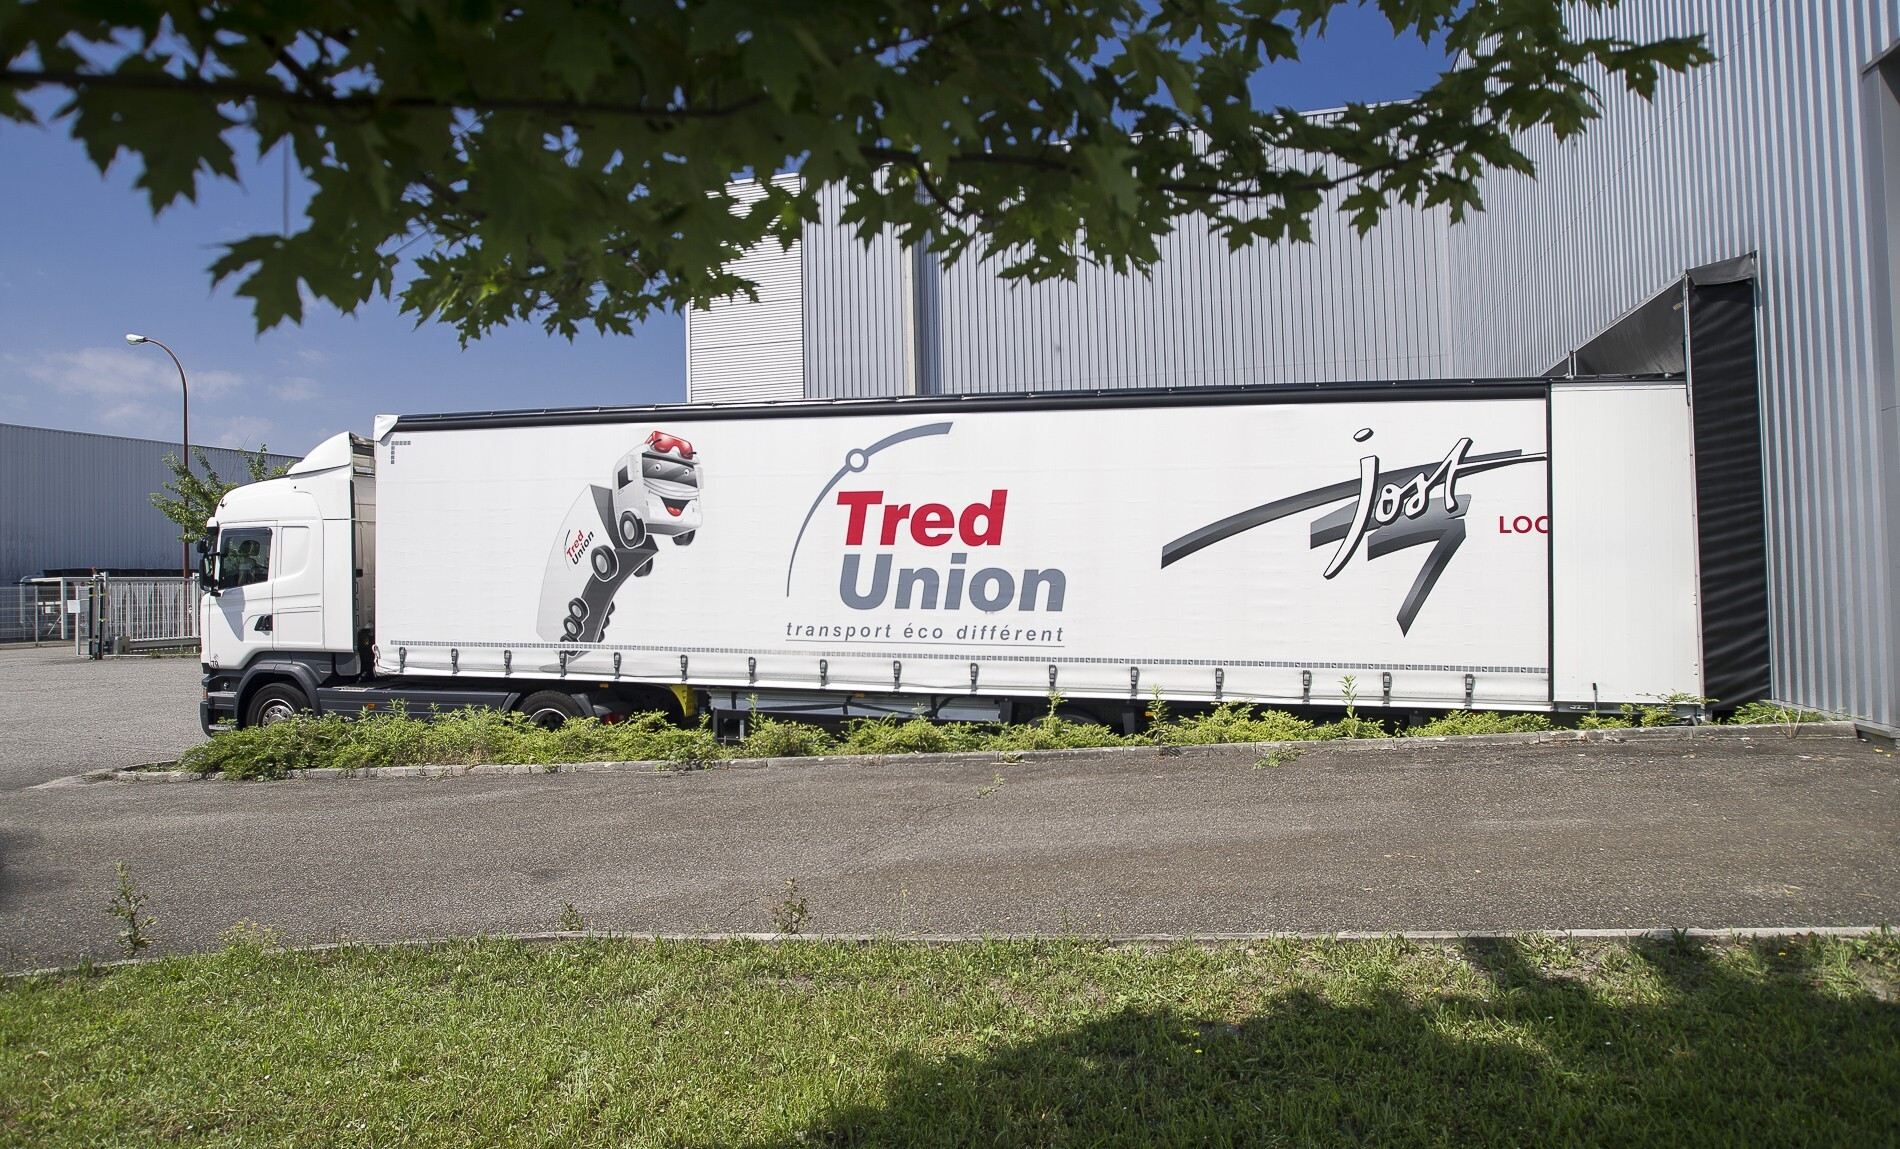 tred-union-camion